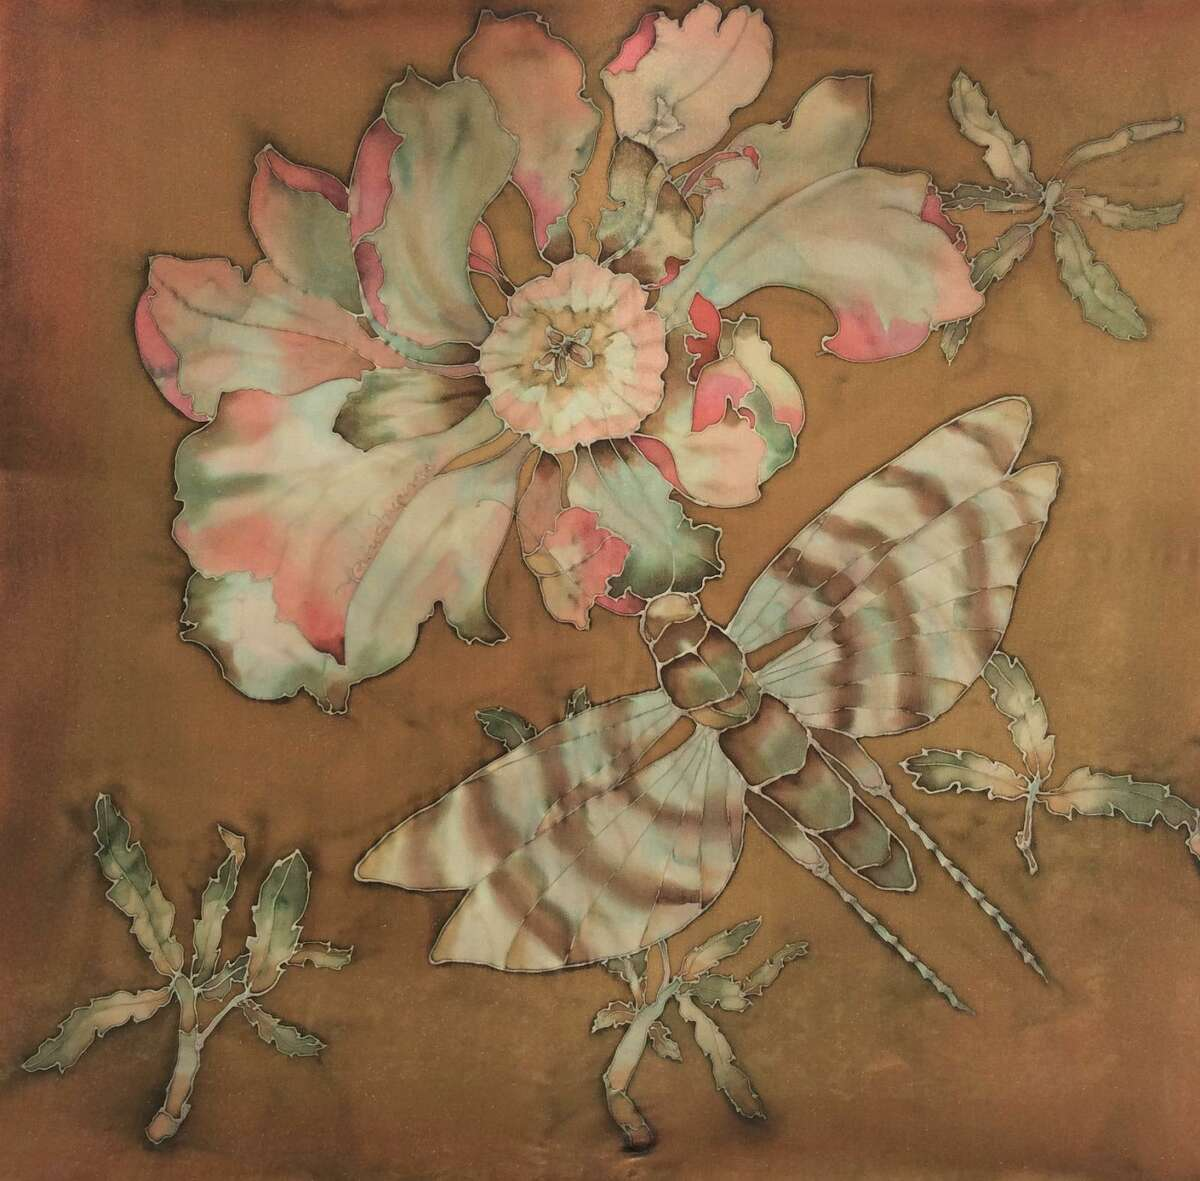 Moth to the Flame by Suzanne Punch is featured in Wilton Library's exhibition, Silk Painters International, on view now through Oct. 3.